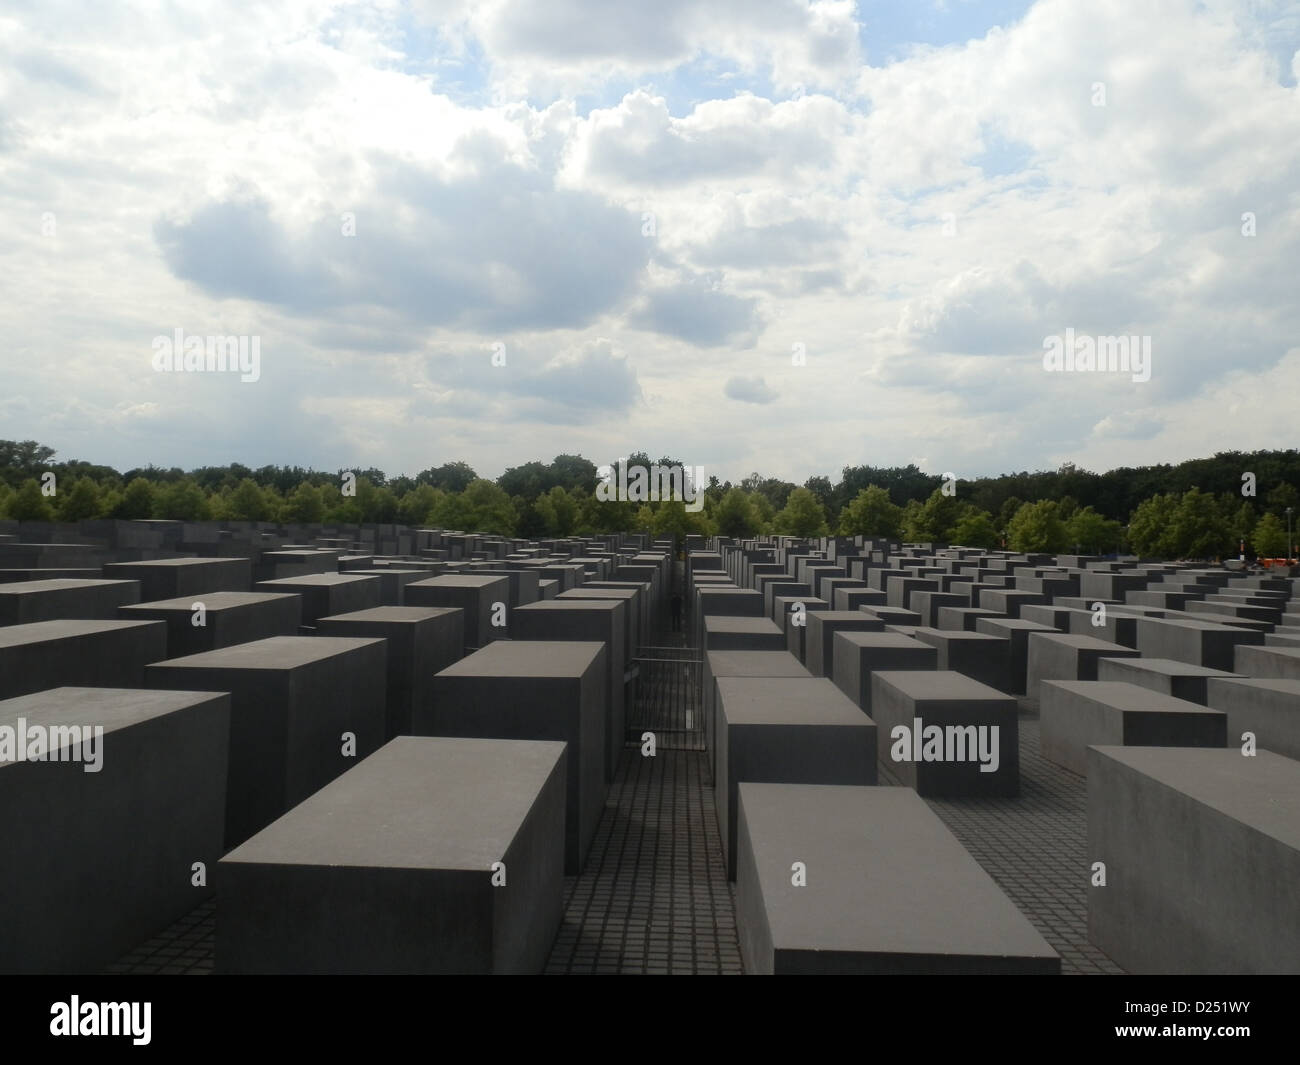 holocaust memorial in Berlin, Germany - Stock Image